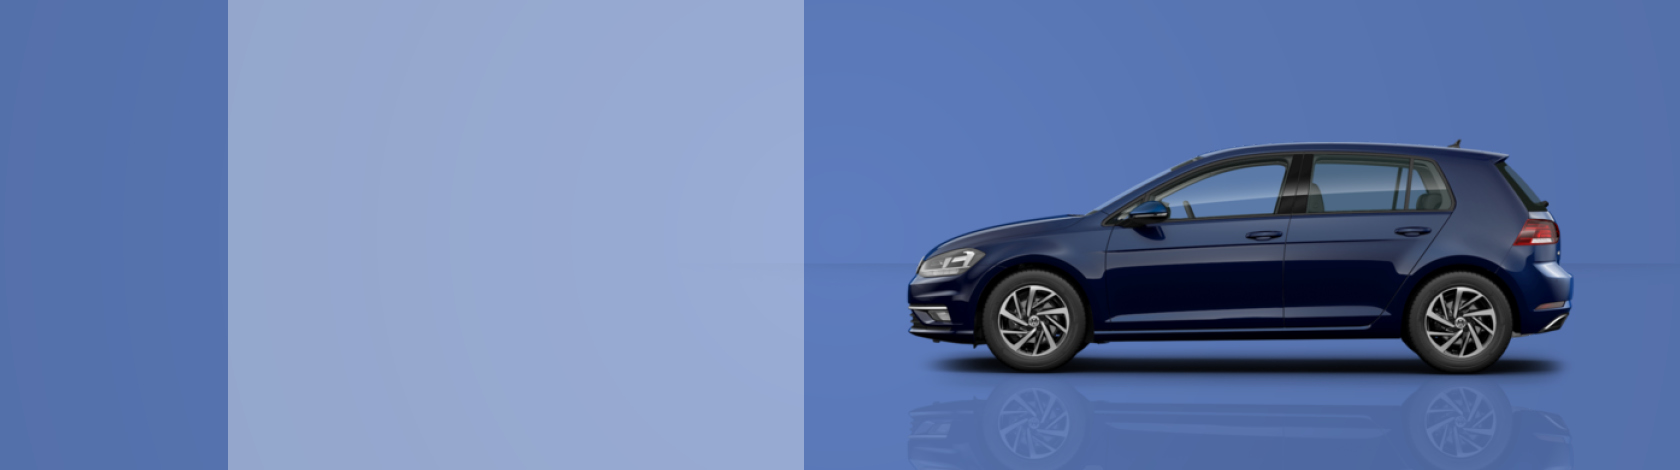 Lookers Volkswagen (Blackpool) | Volkswagen UK